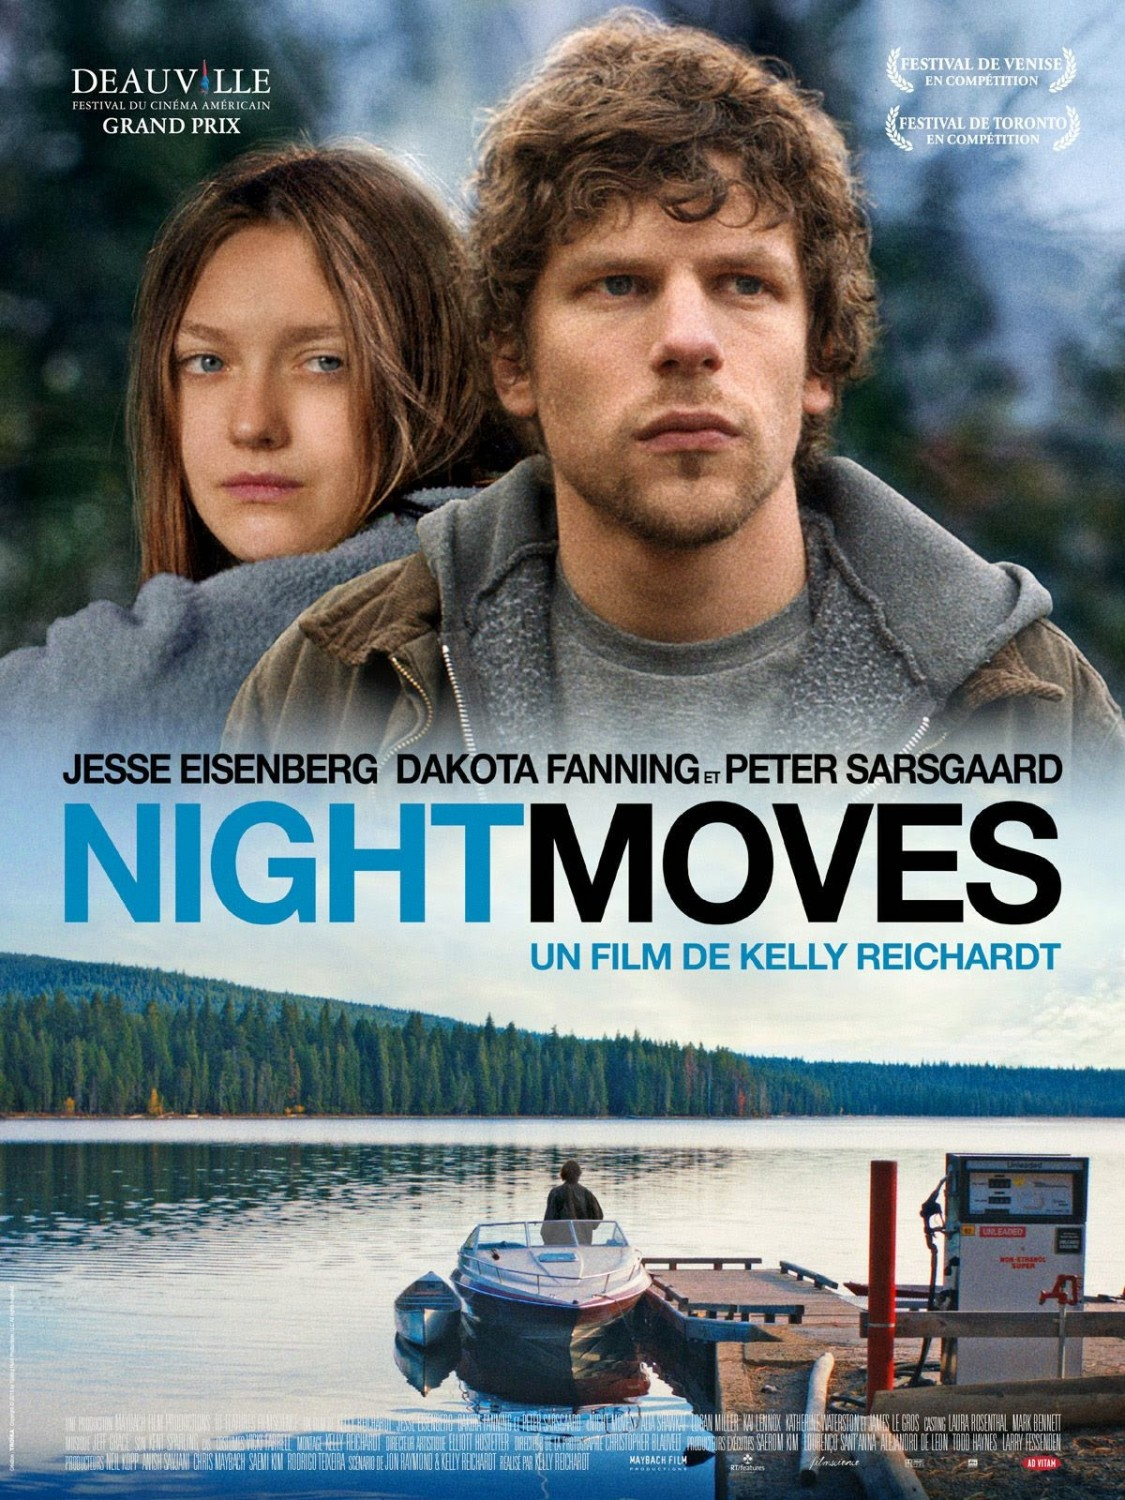 NIGHT MOVES-Official Poster Banner PROMO XLG-25MARCO2014-01